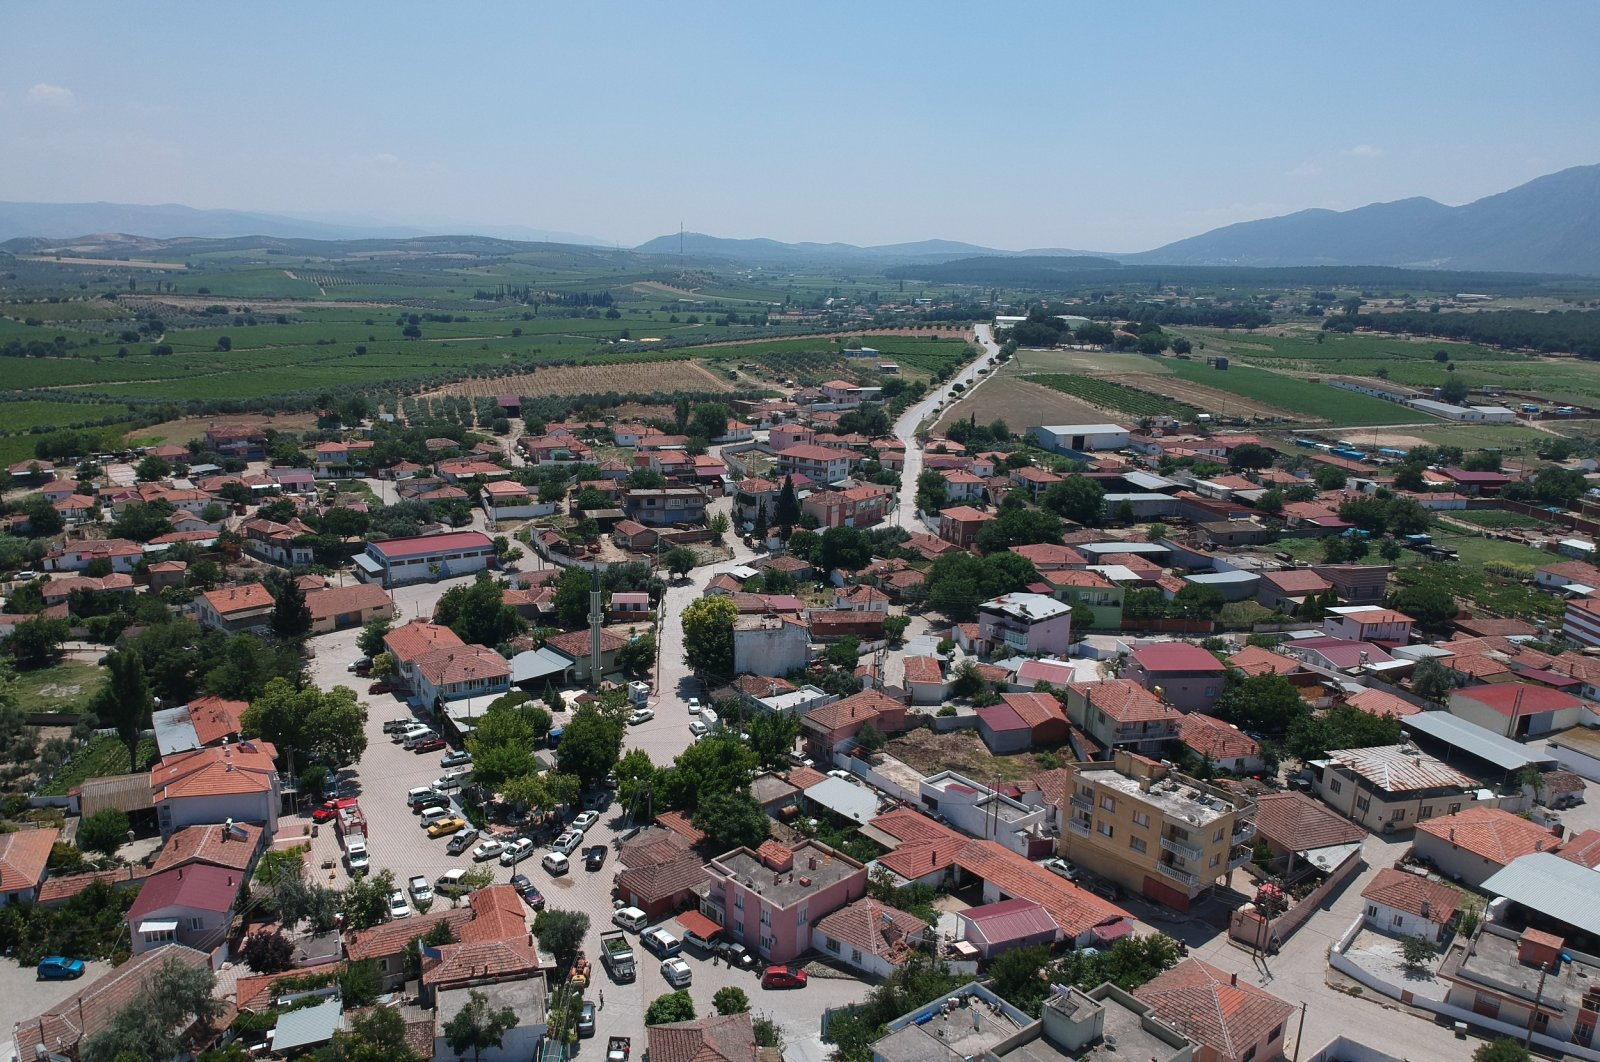 This drone image shows Kumkuyucak village in the Saruhanlı district of western Manisa province after the magnitude 5.5 earthquake that rattled western Turkey, on June 26, 2020. (AA Photo)